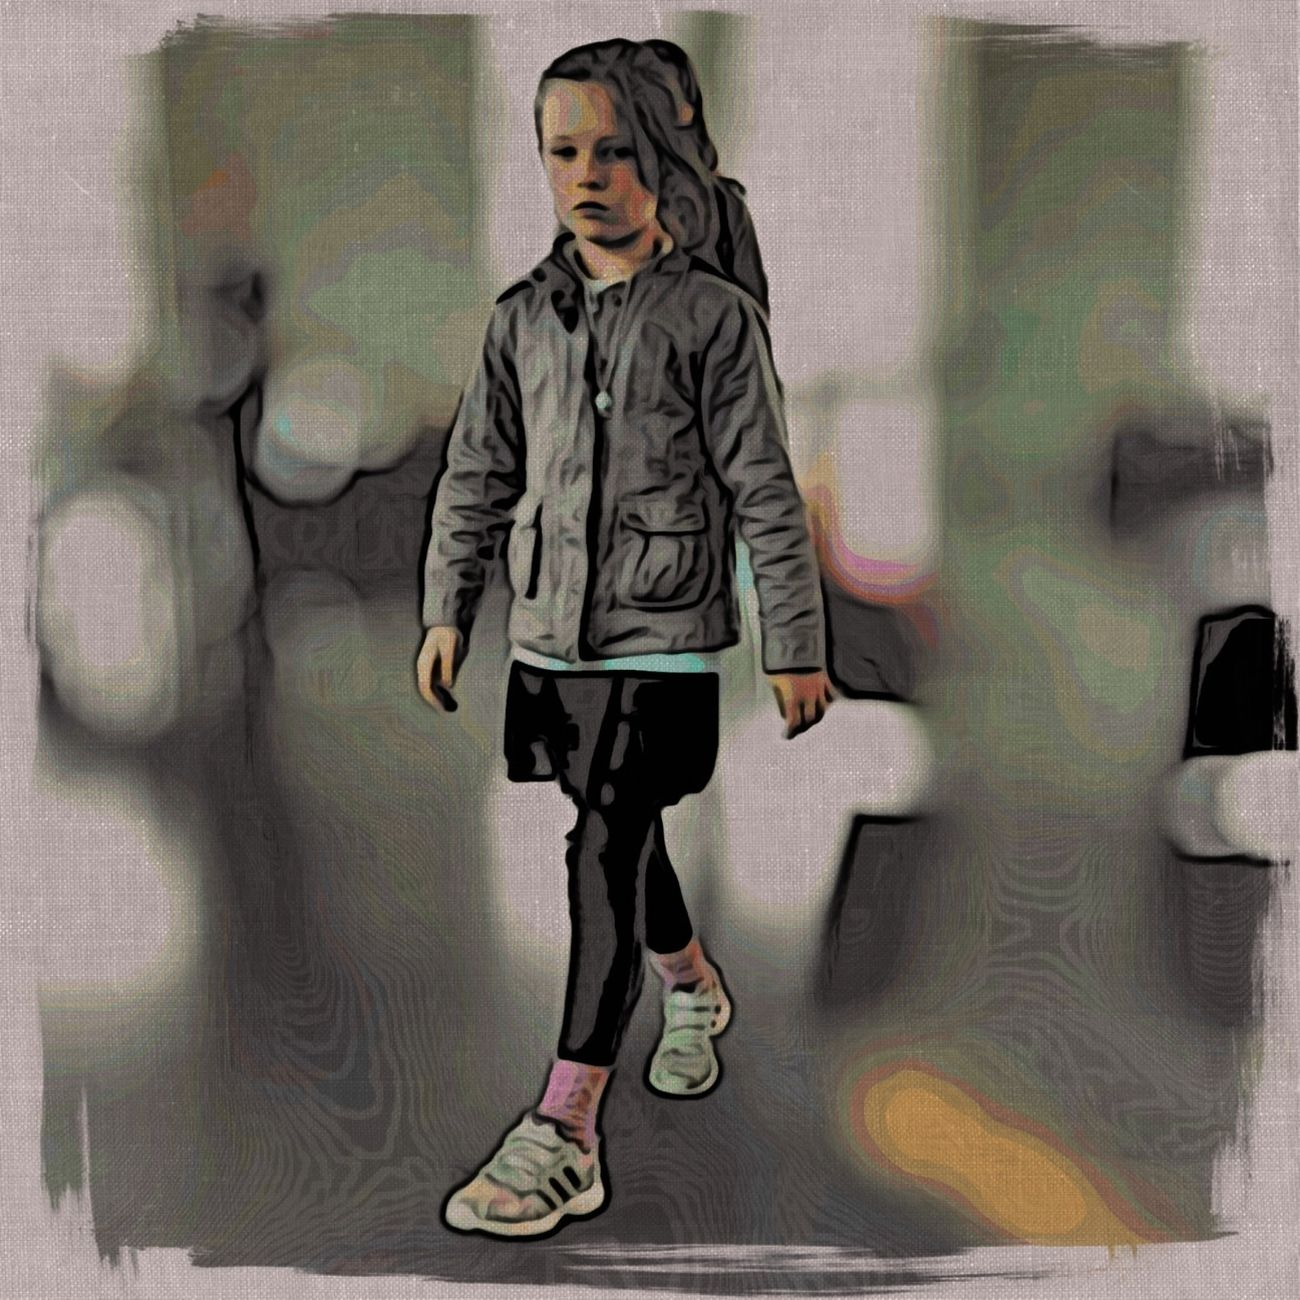 Kids IPhoneography At The Airport Innocence Of Youth